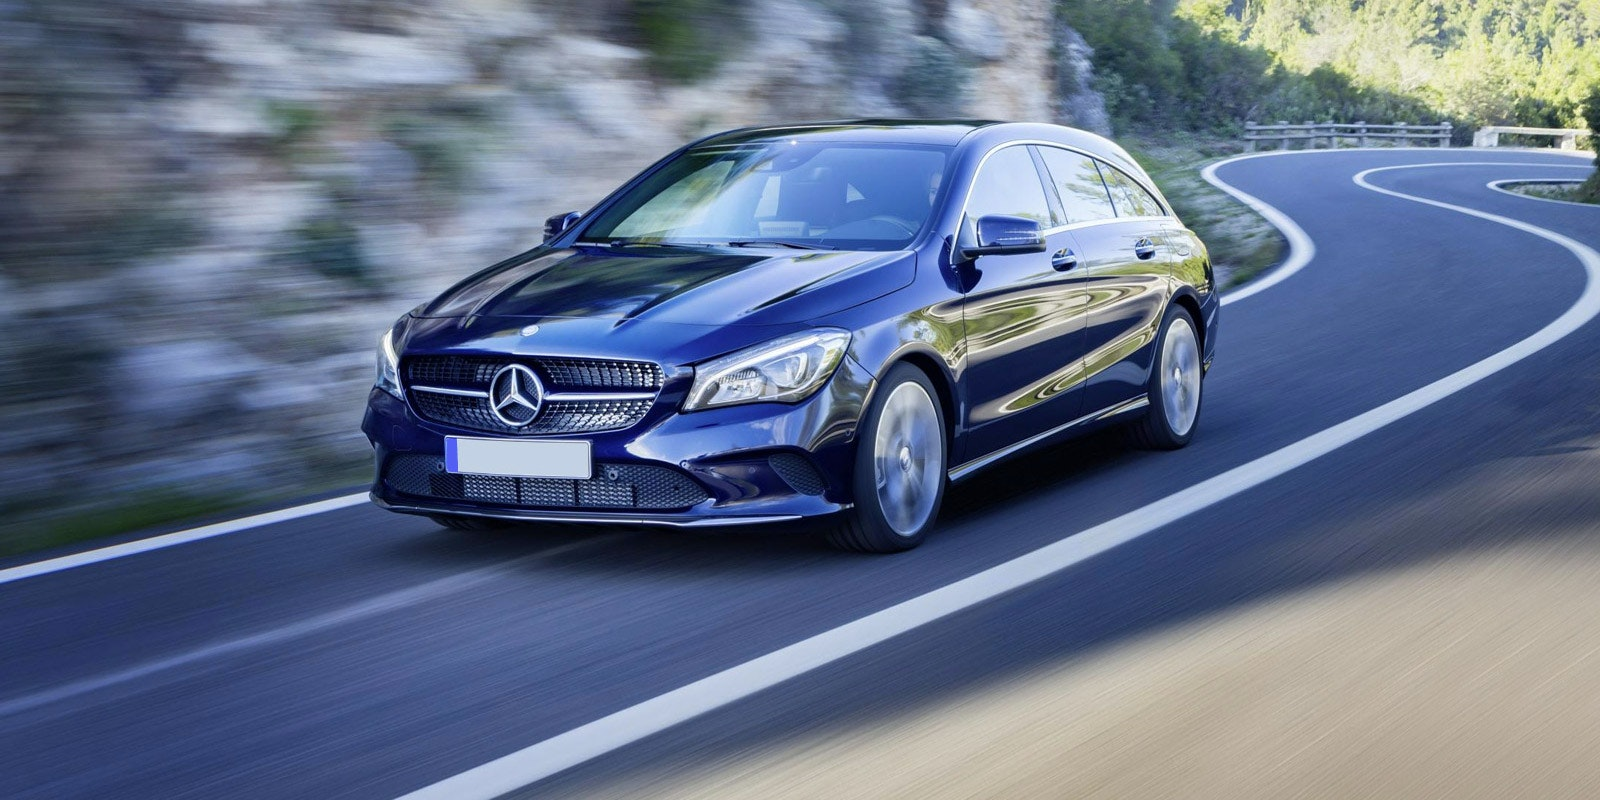 Mercedes Cla And Cla Shooting Brake Facelift Complete Guide Carwow